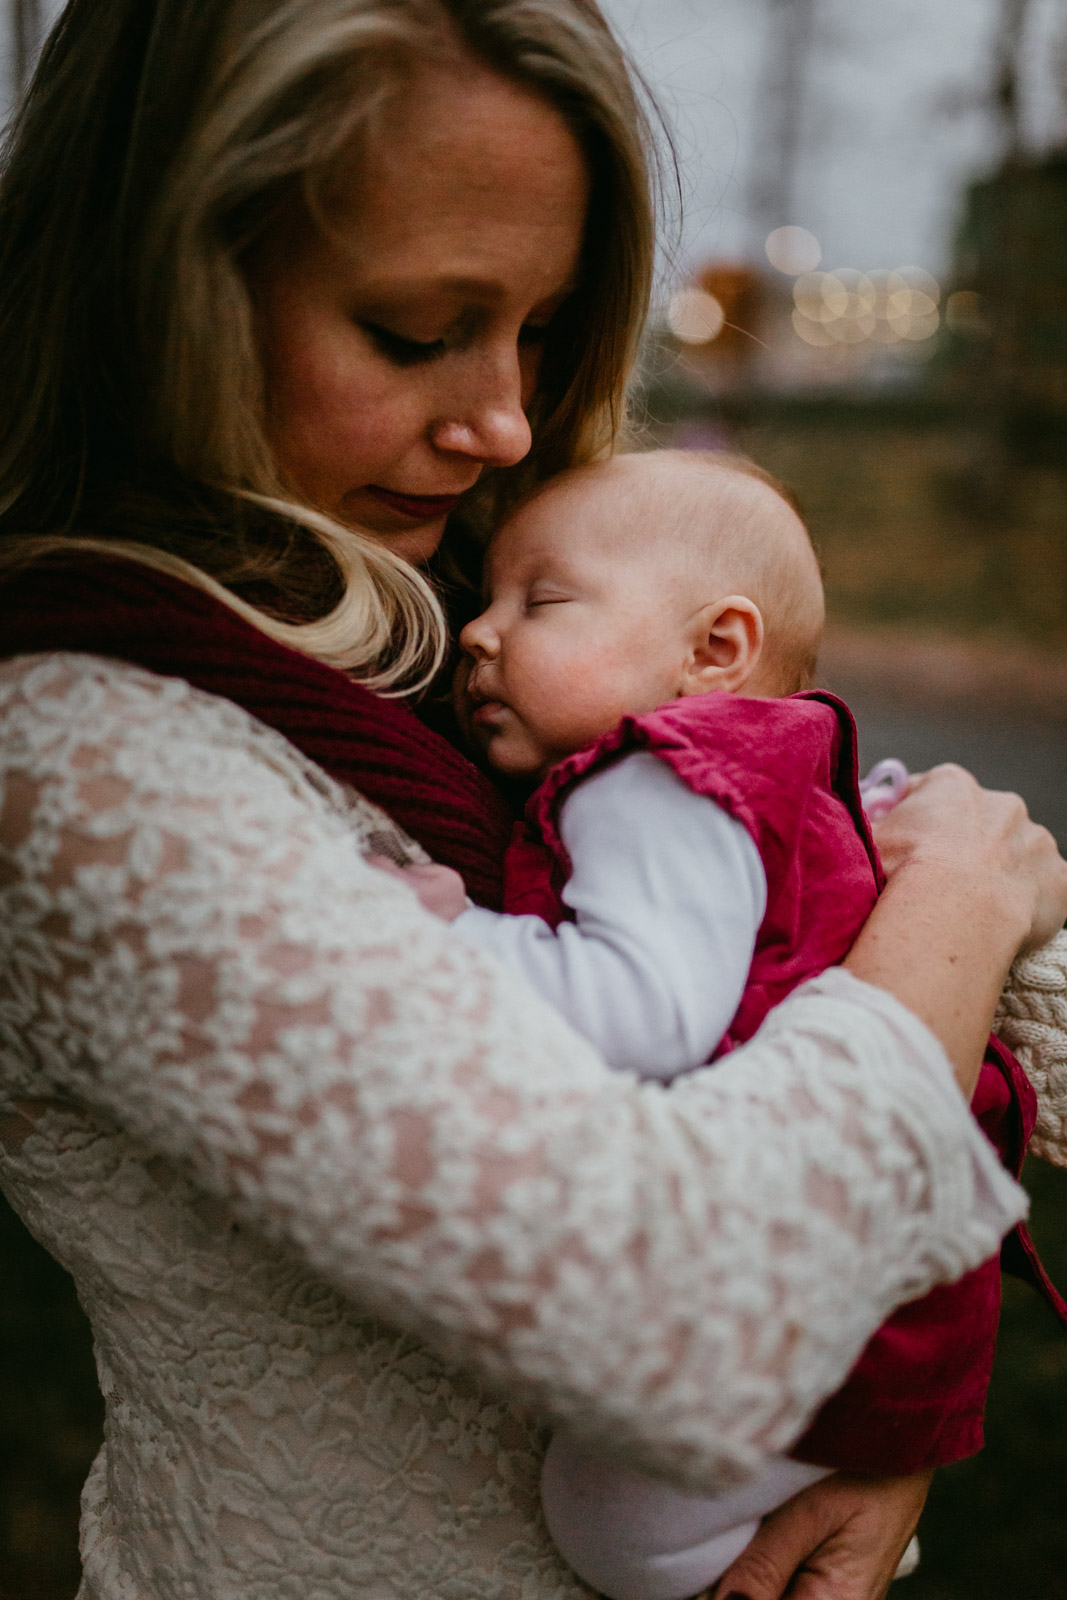 Baby girl asleep in her mother's arms at The Barn at One Loudoun, Ashburn, Virginia